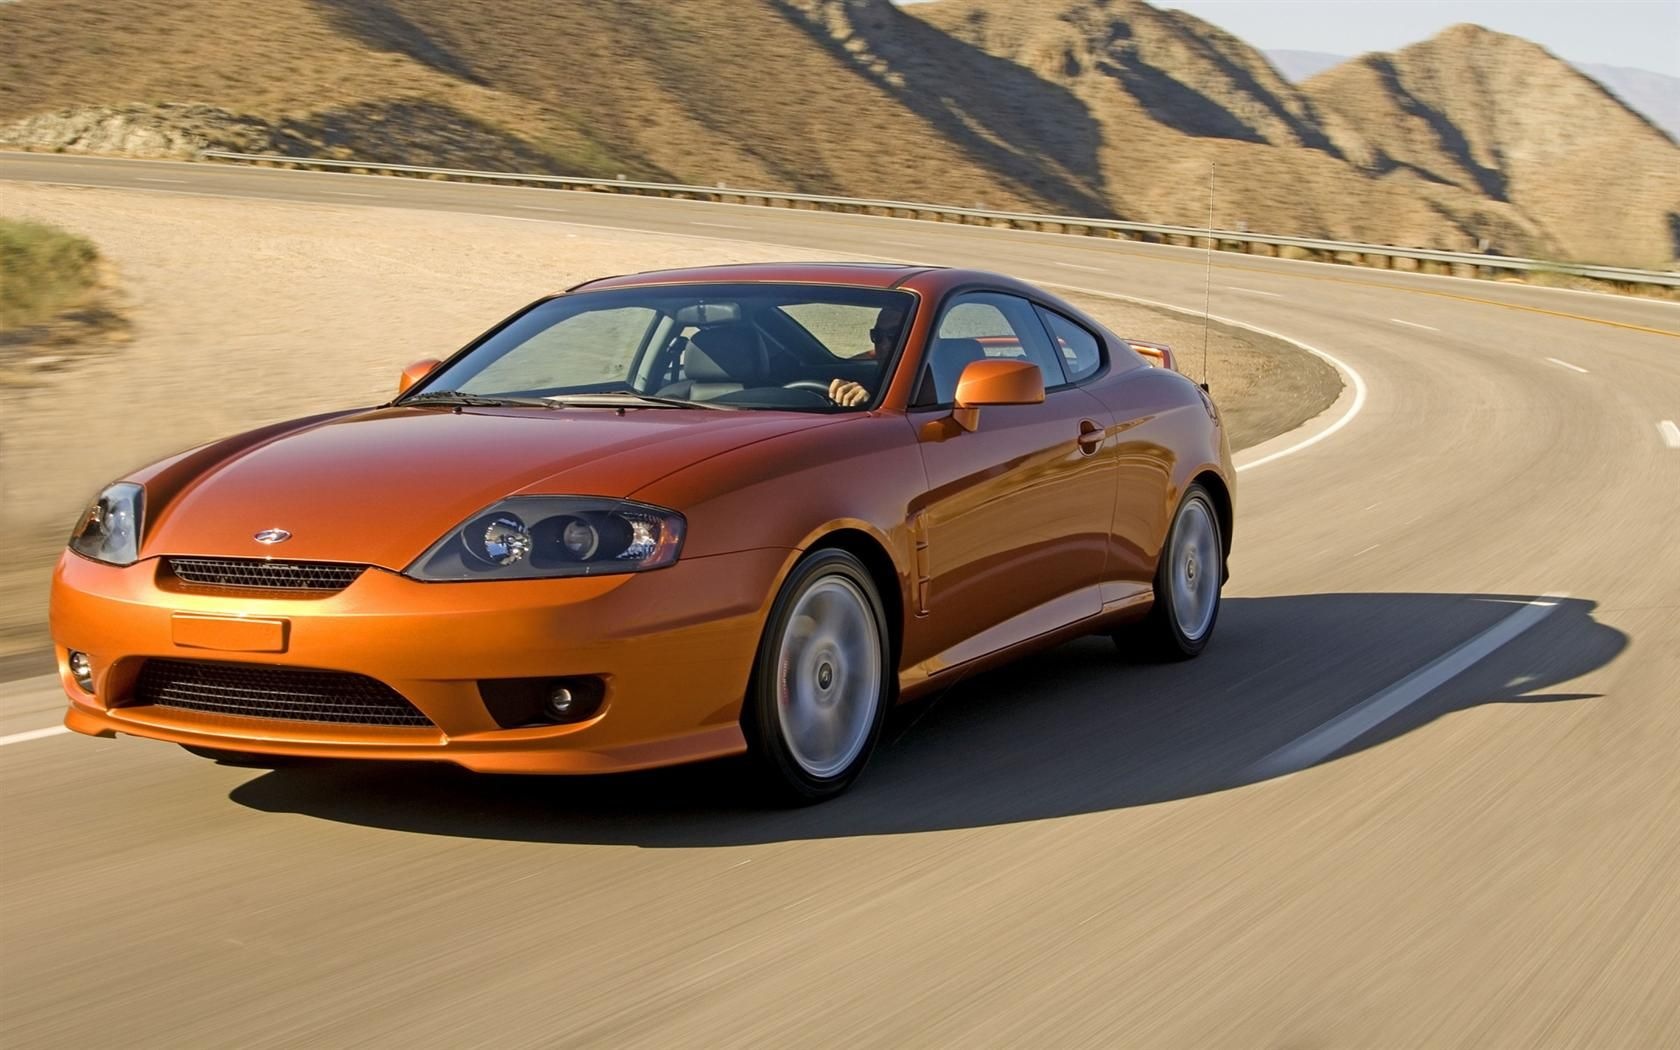 Hyundai Tiburon Yyy In Burnt Orange